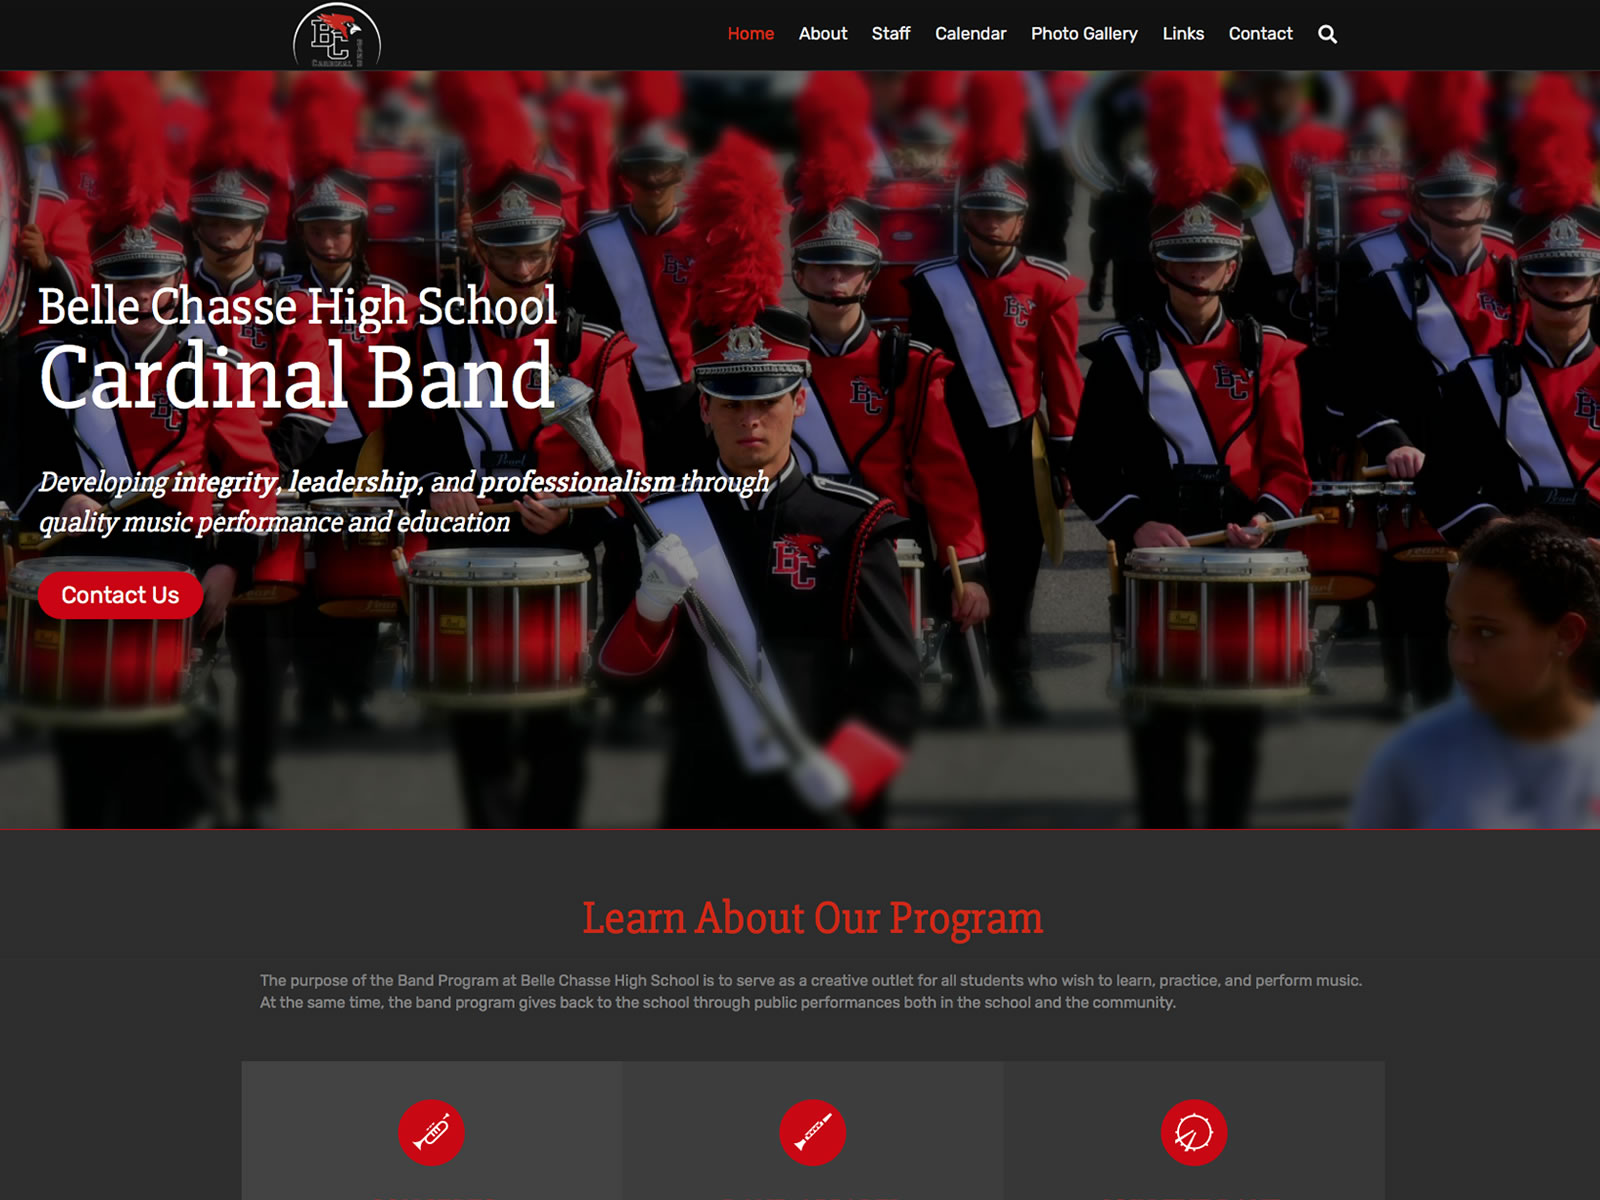 Belle Chasse High School Cardinal Band